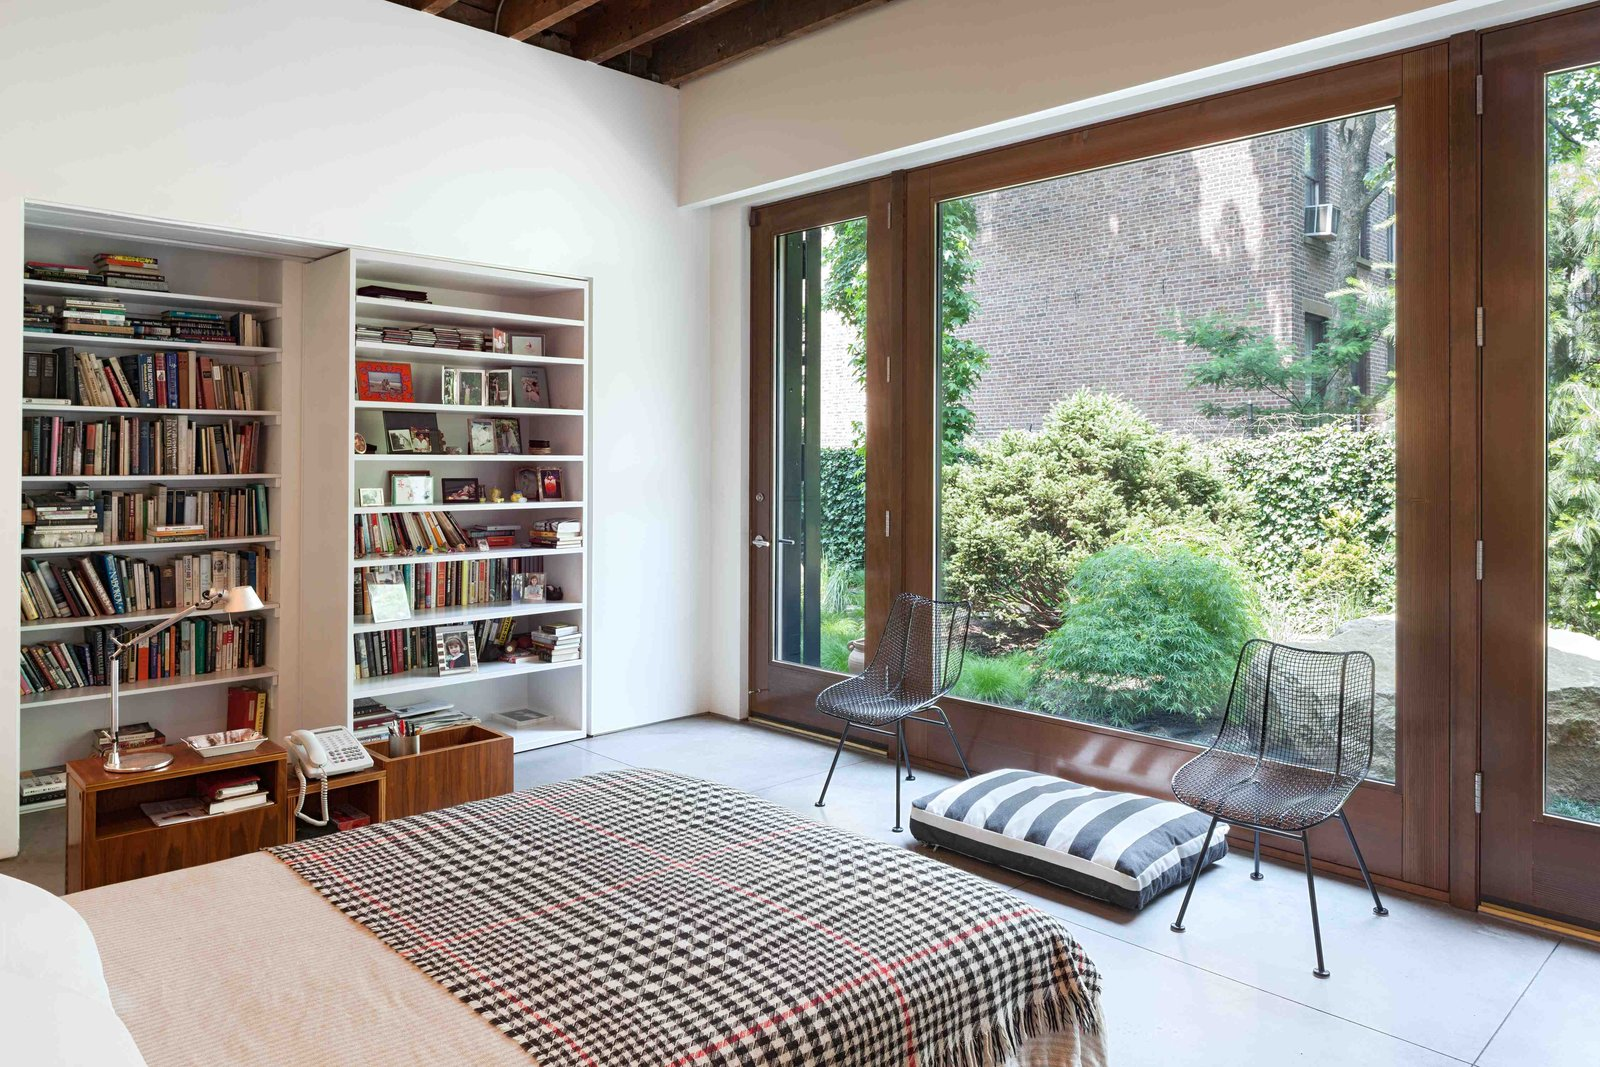 The bedroom can be closed off from the painting studio with a heavy sliding bookshelf on rollers.  Photo 2 of 8 in This Spacious Home in a Former Warehouse is Part Art Gallery